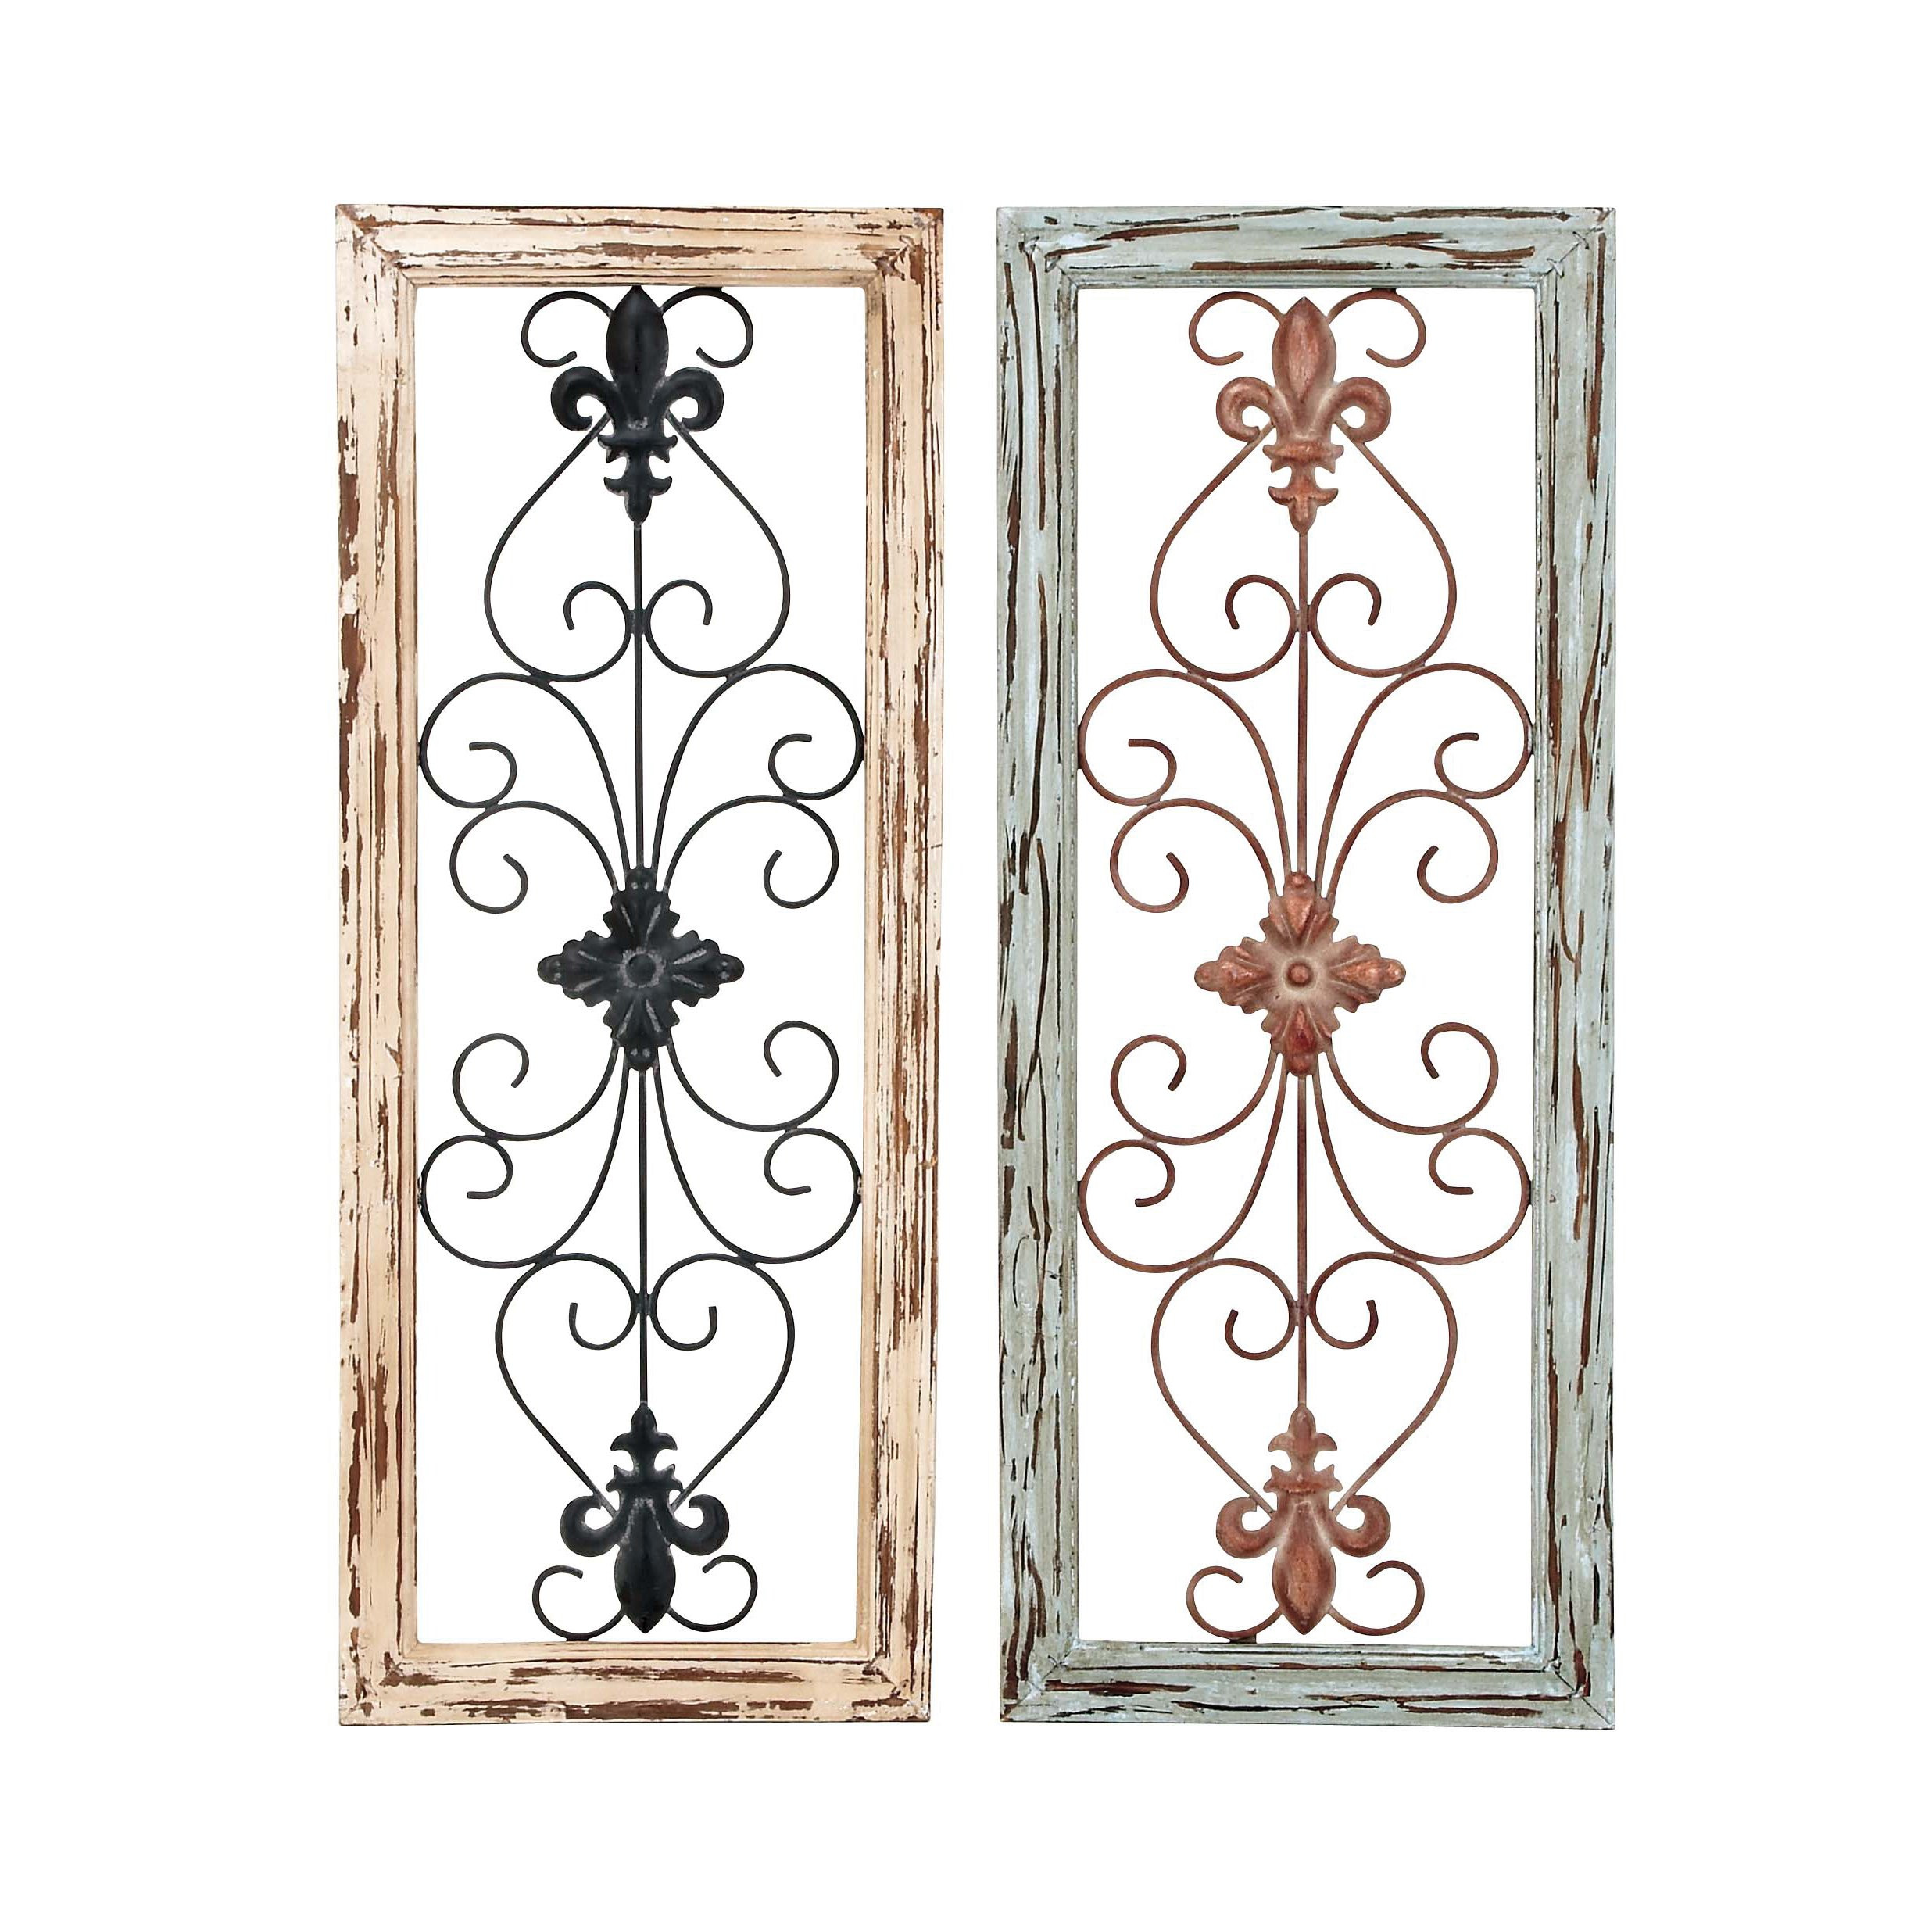 Best ideas about Wayfair Wall Art . Save or Pin Woodland Imports 2 Piece Panel Wall Décor Set & Reviews Now.